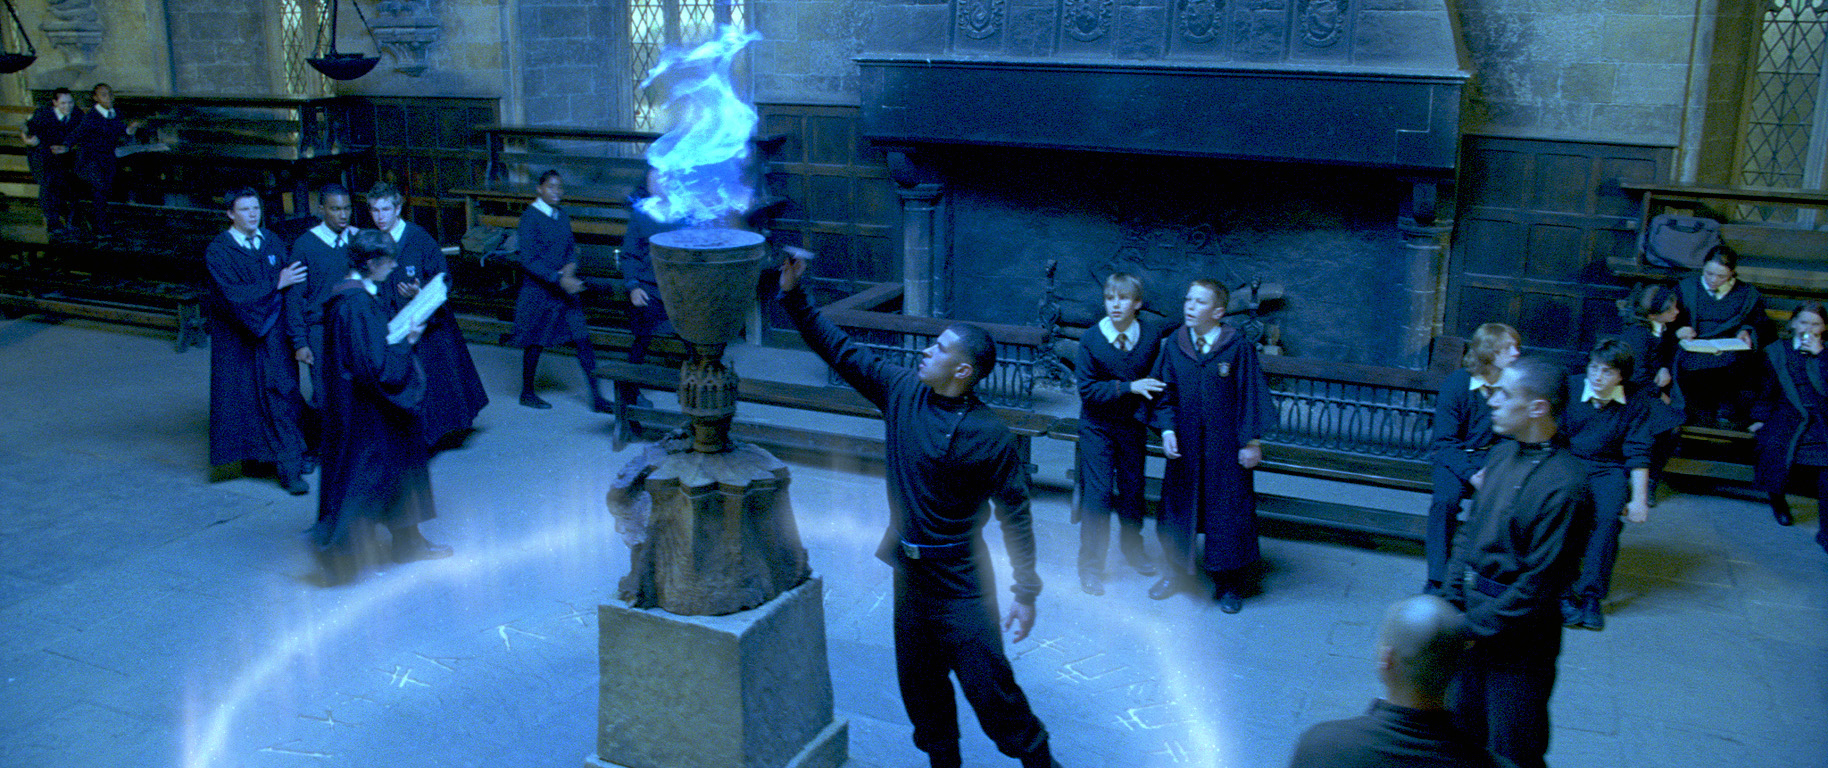 Goblet of Fire, Great Hall, Warner Bros Studio Tour London, Harry Potter, Time Out